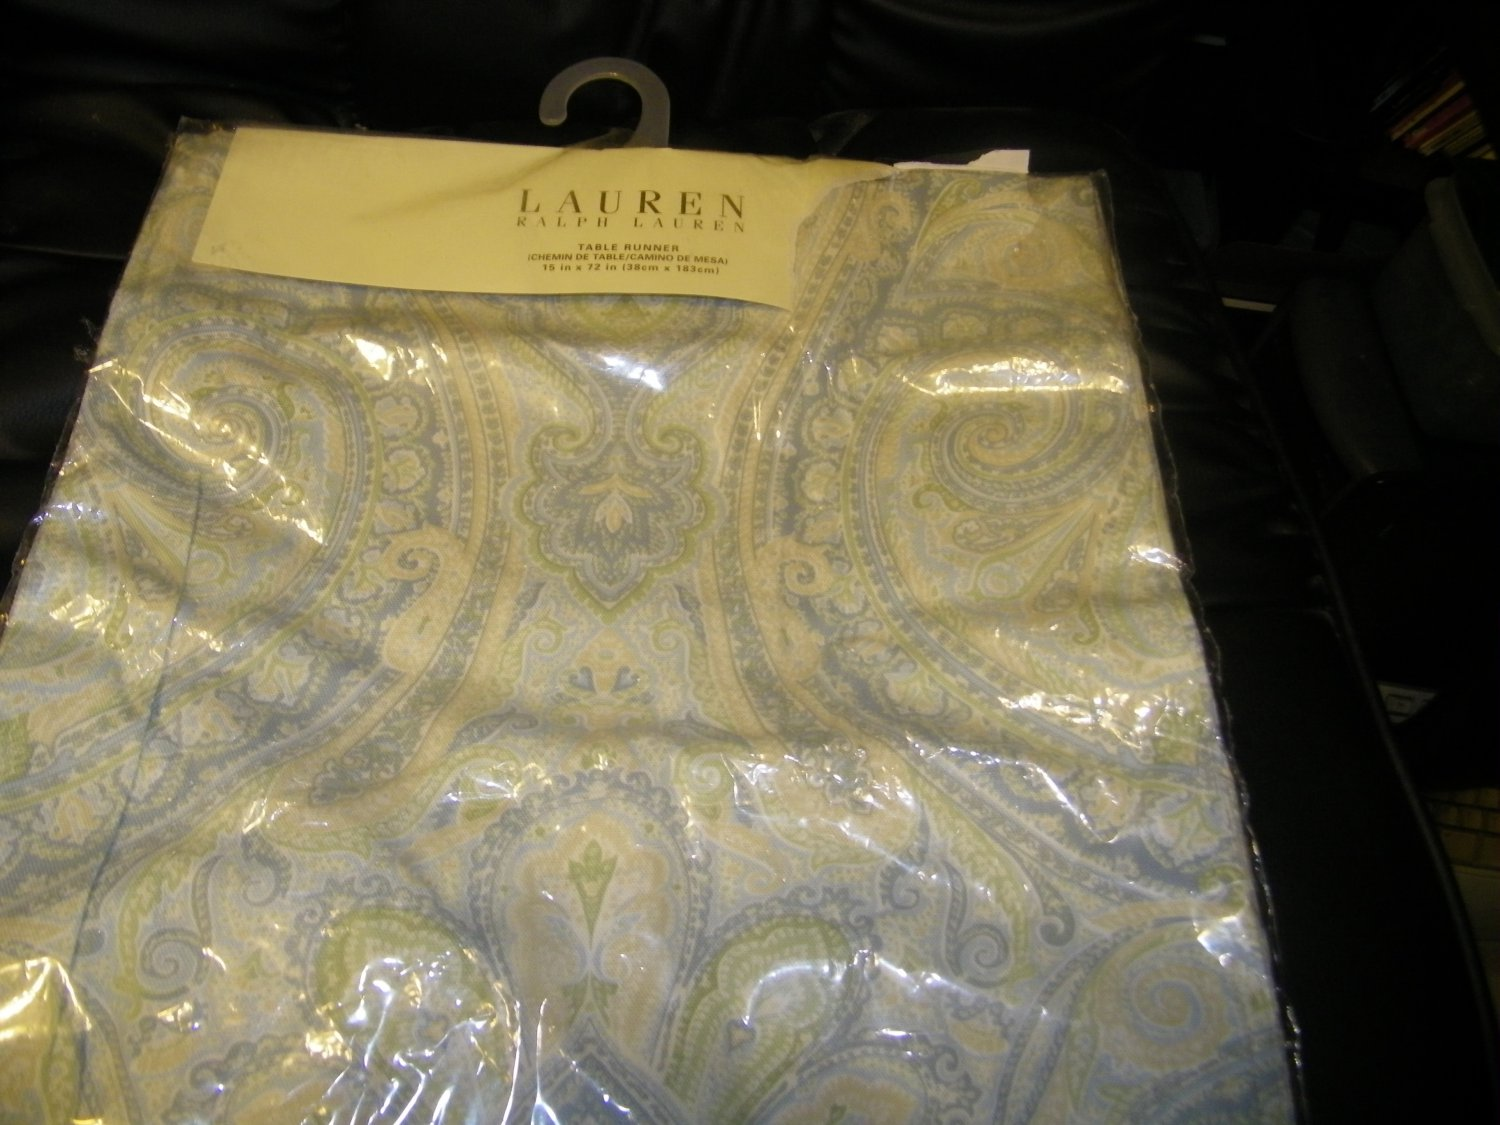 NEW  AQUA lauren PAISLEY RALPH TABLE runner LAUREN table ralph FENTON RUNNER